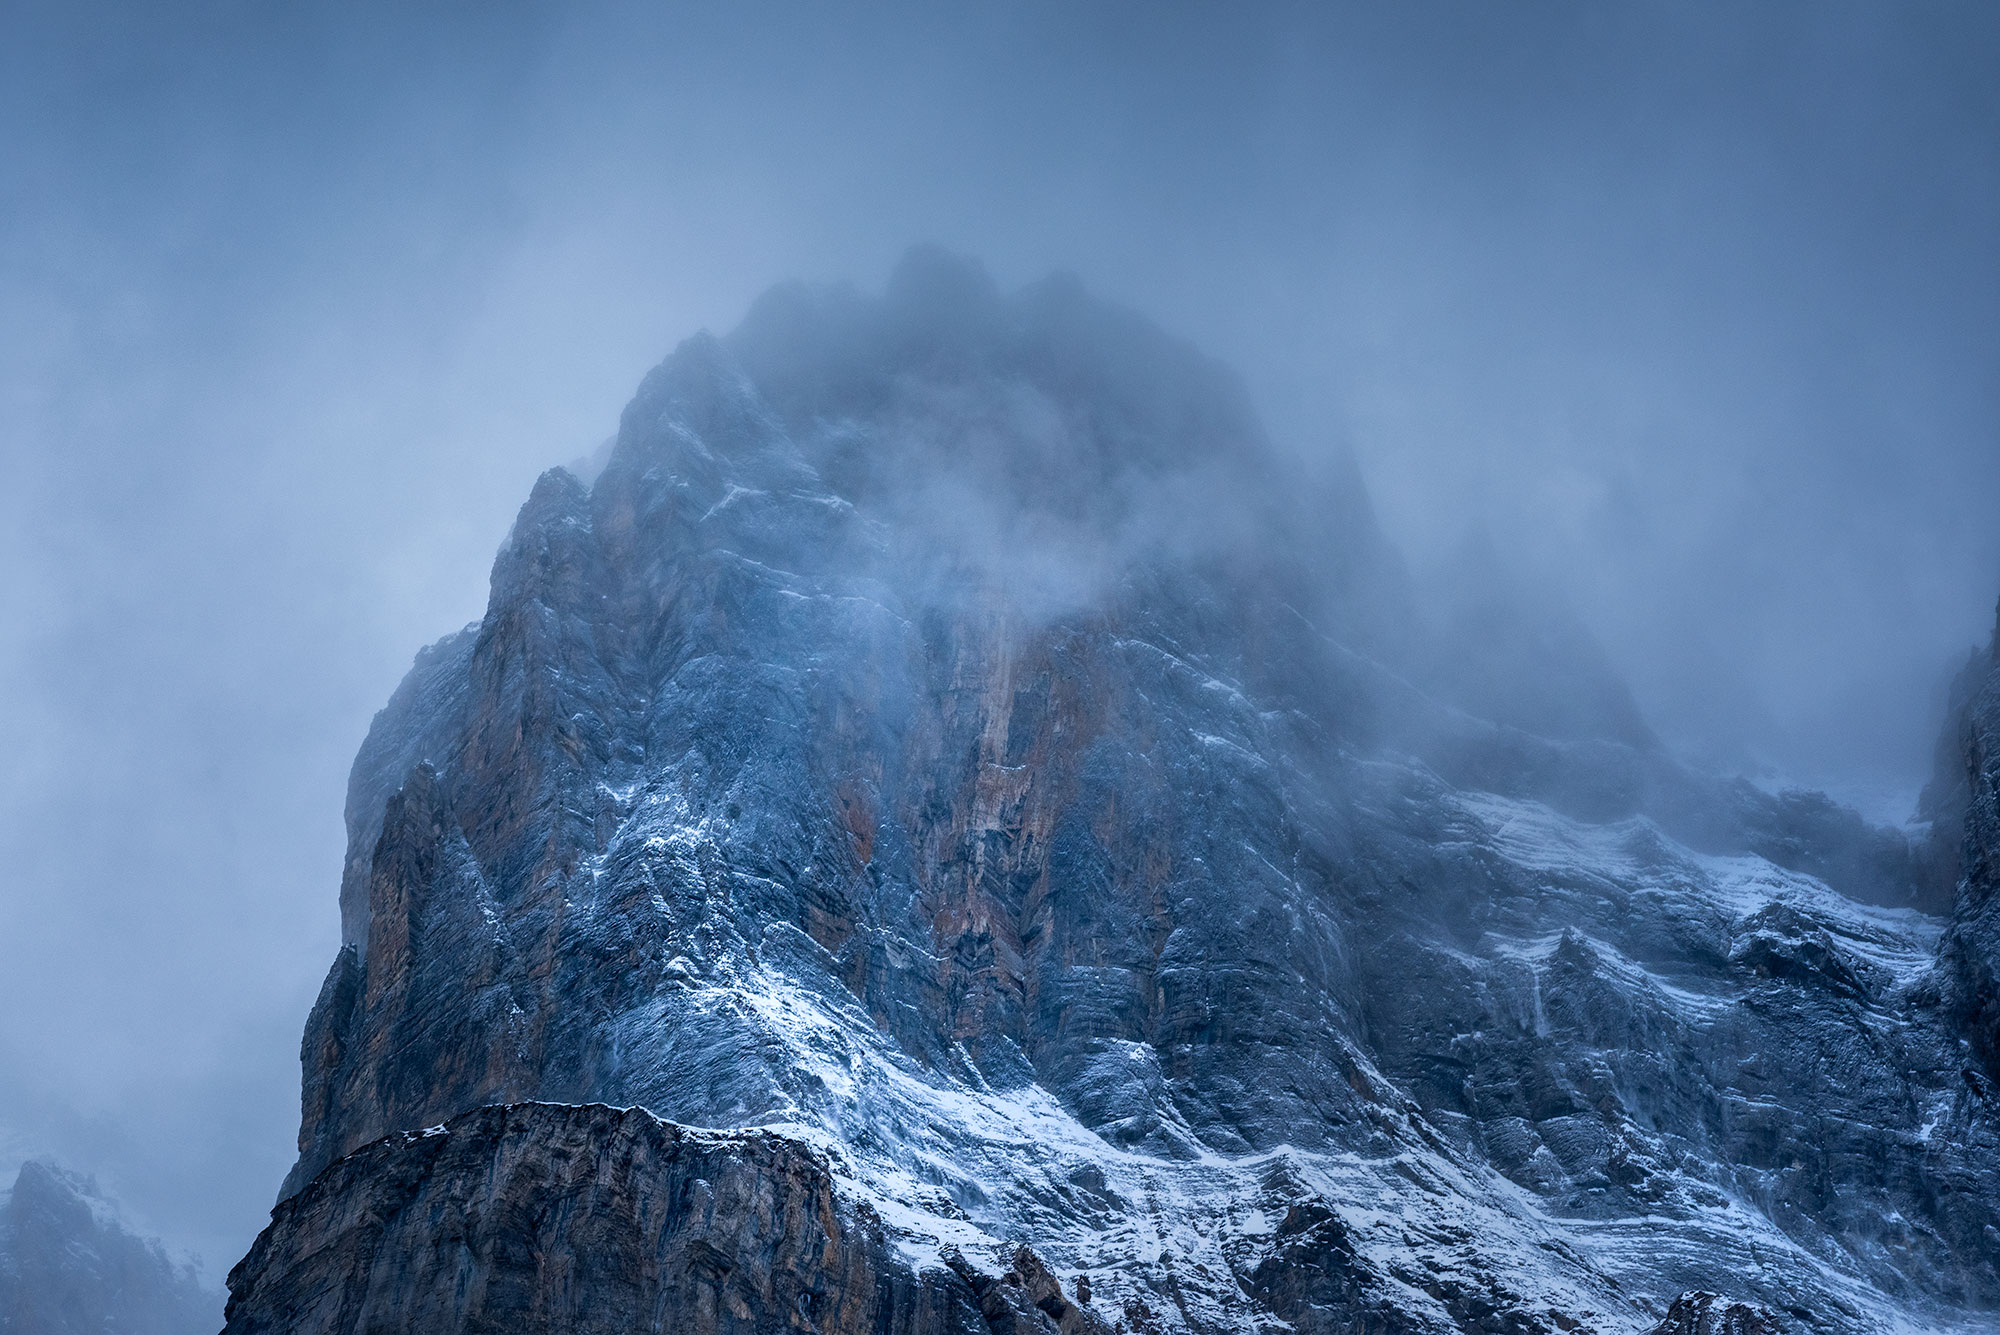 Moody and dramatic landscape photography of the Swiss Alps in the fog.